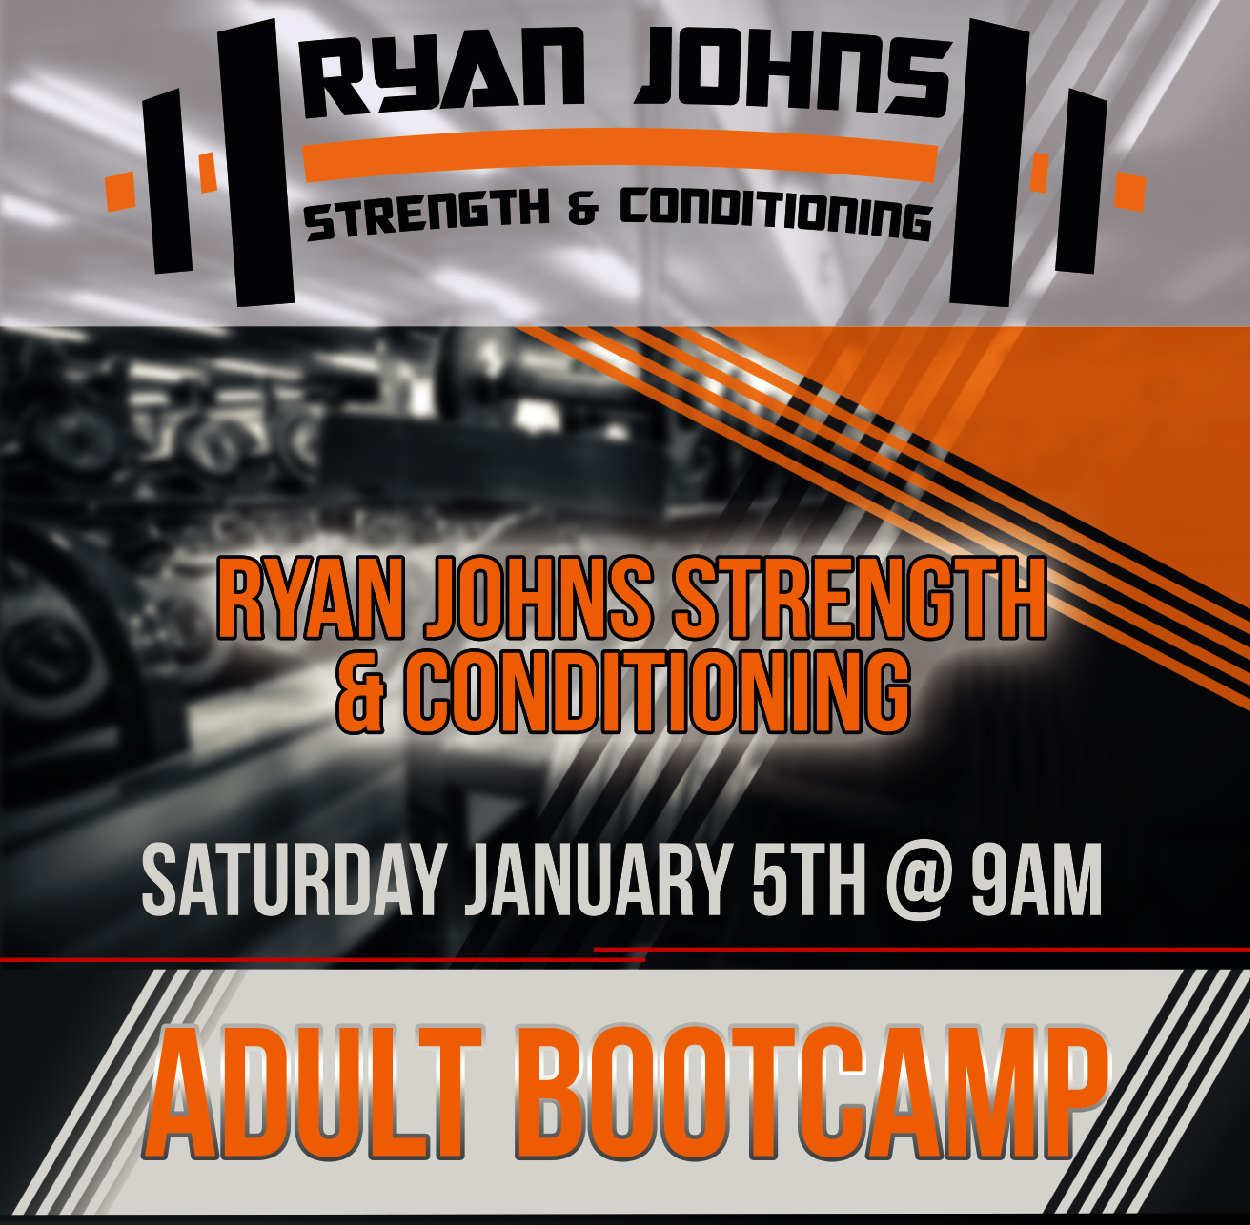 Ryan Johns Bootcamp - When:Saturday January 5th @ 9AMWhat:60 Minute High-Intensity Adult Bootcamp / Strength & Conditioning (Total body burn, core training)Contact: Pre-register today!ryanjohnsstrength@hotmail.com